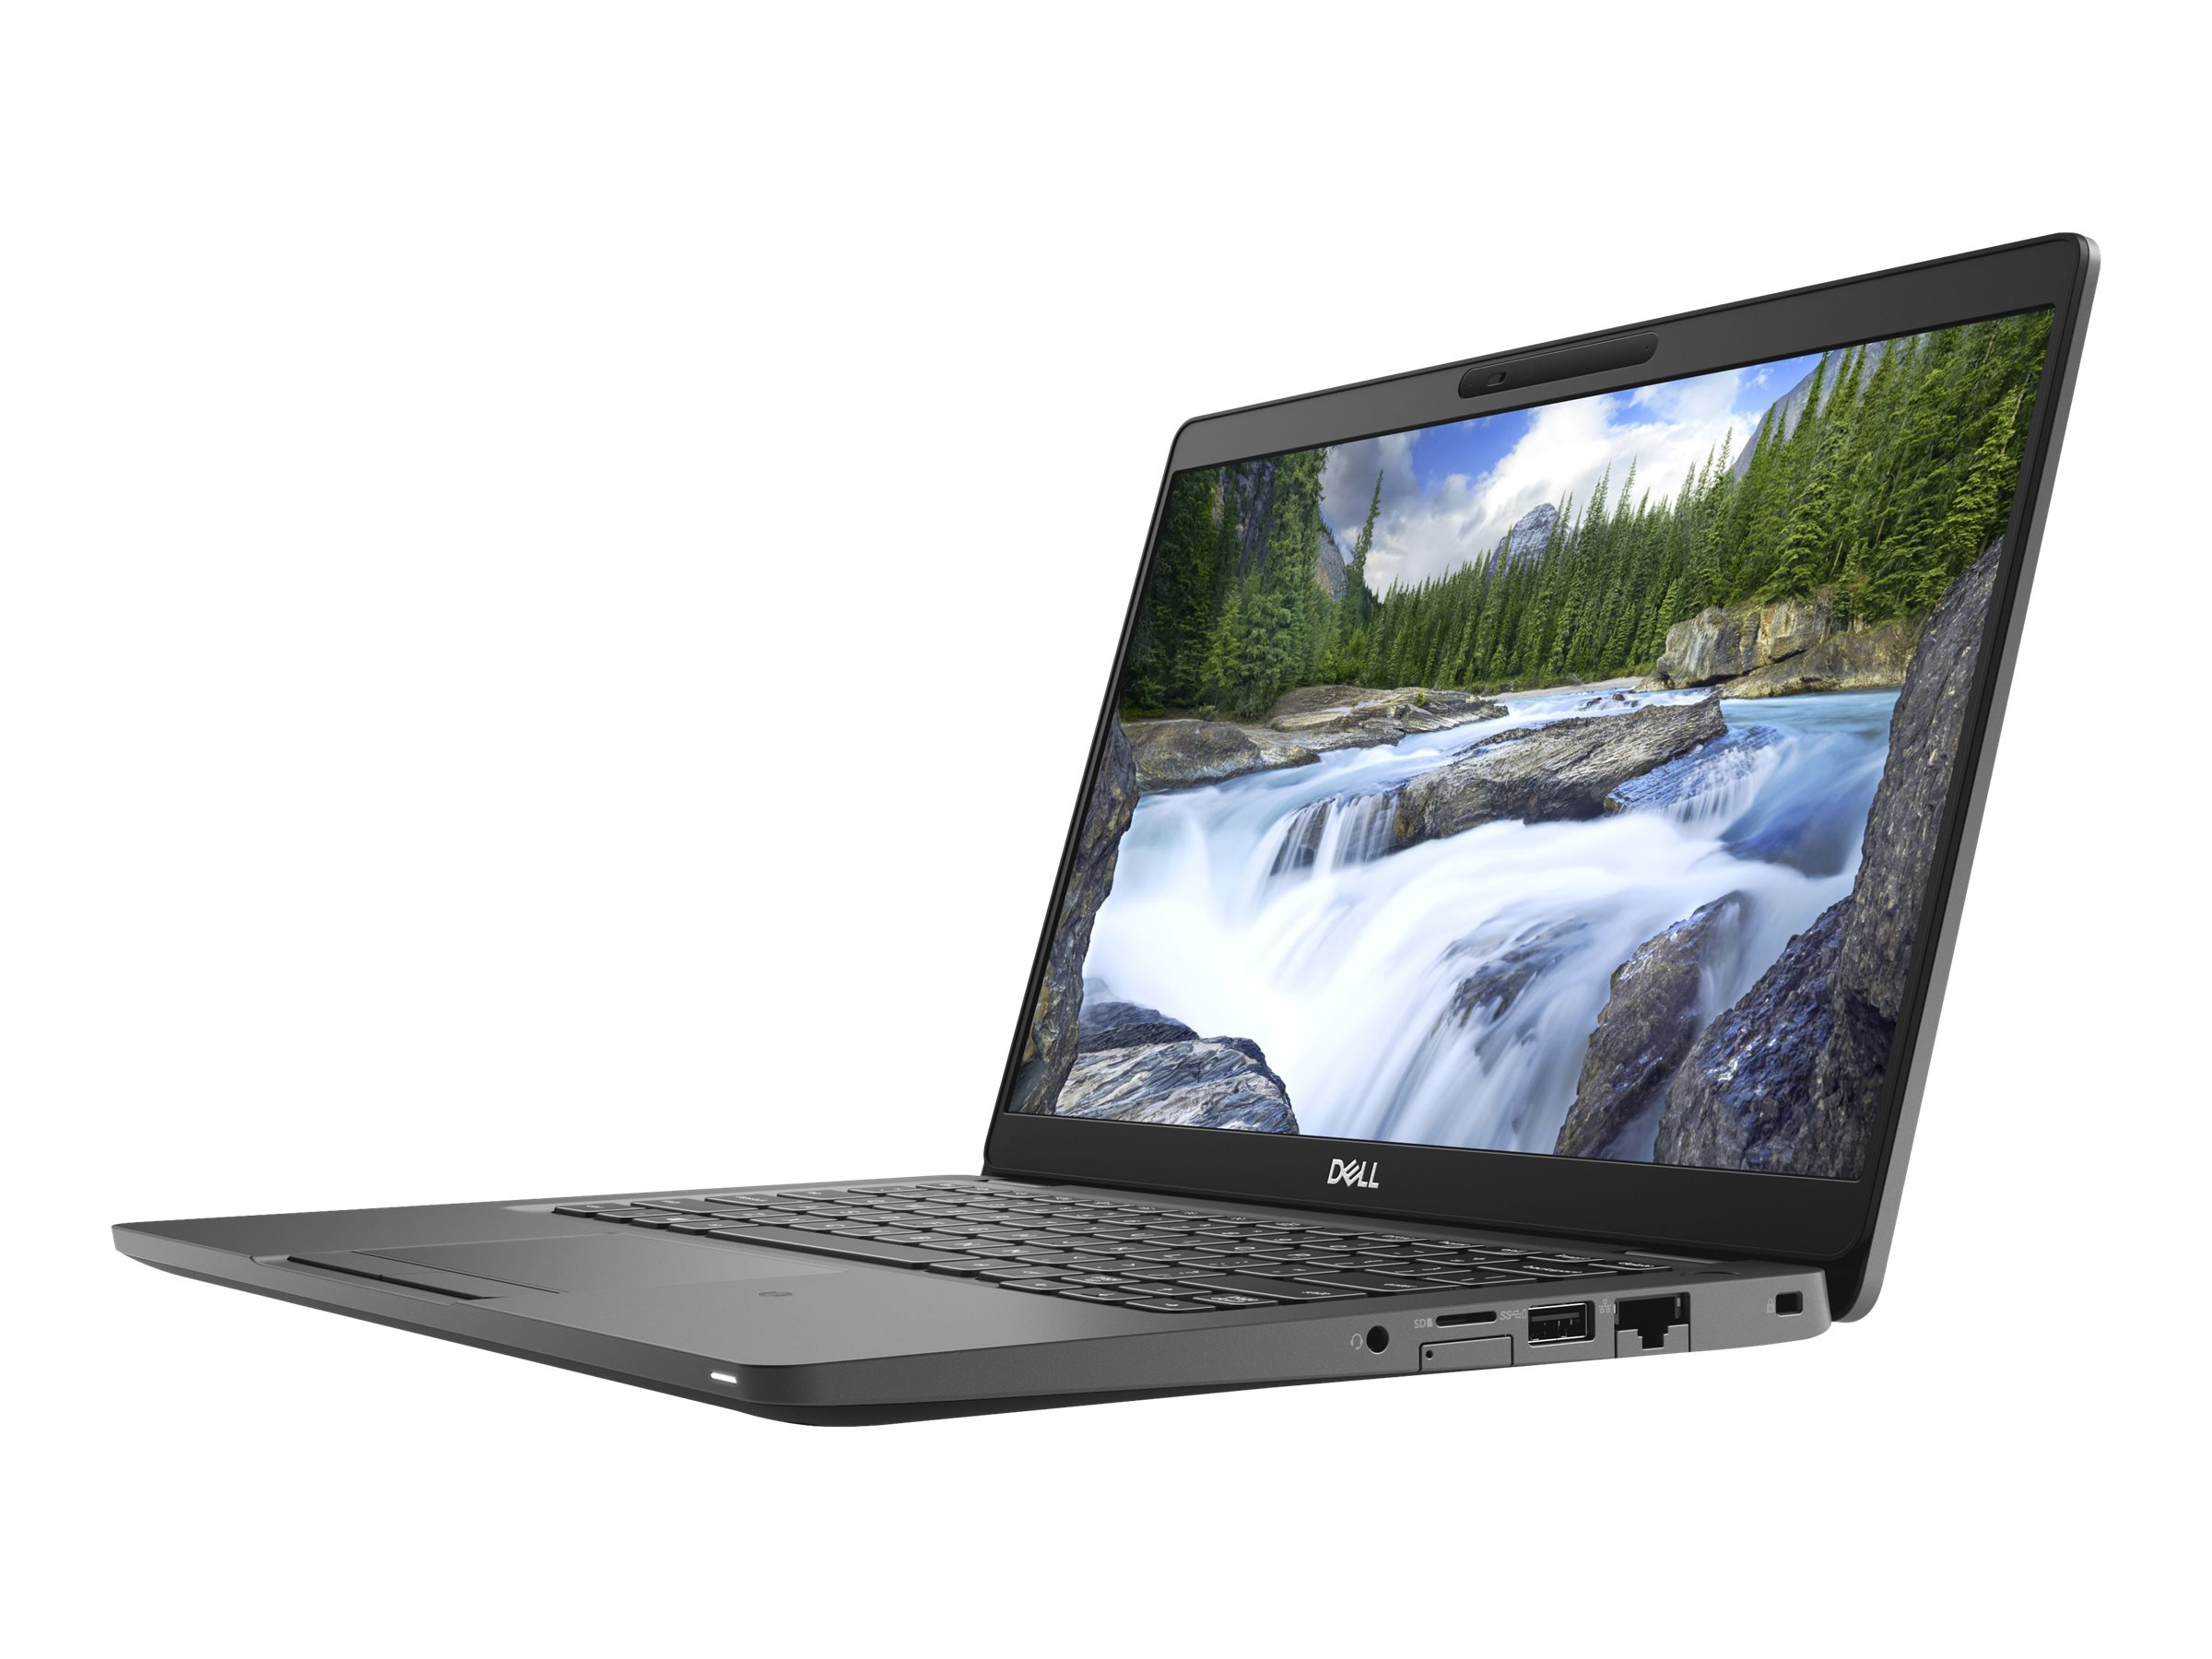 "Dell Latitude 5300 - 13.3"" - Core i7 8665U - 8 GB RAM - 256 GB SSD"